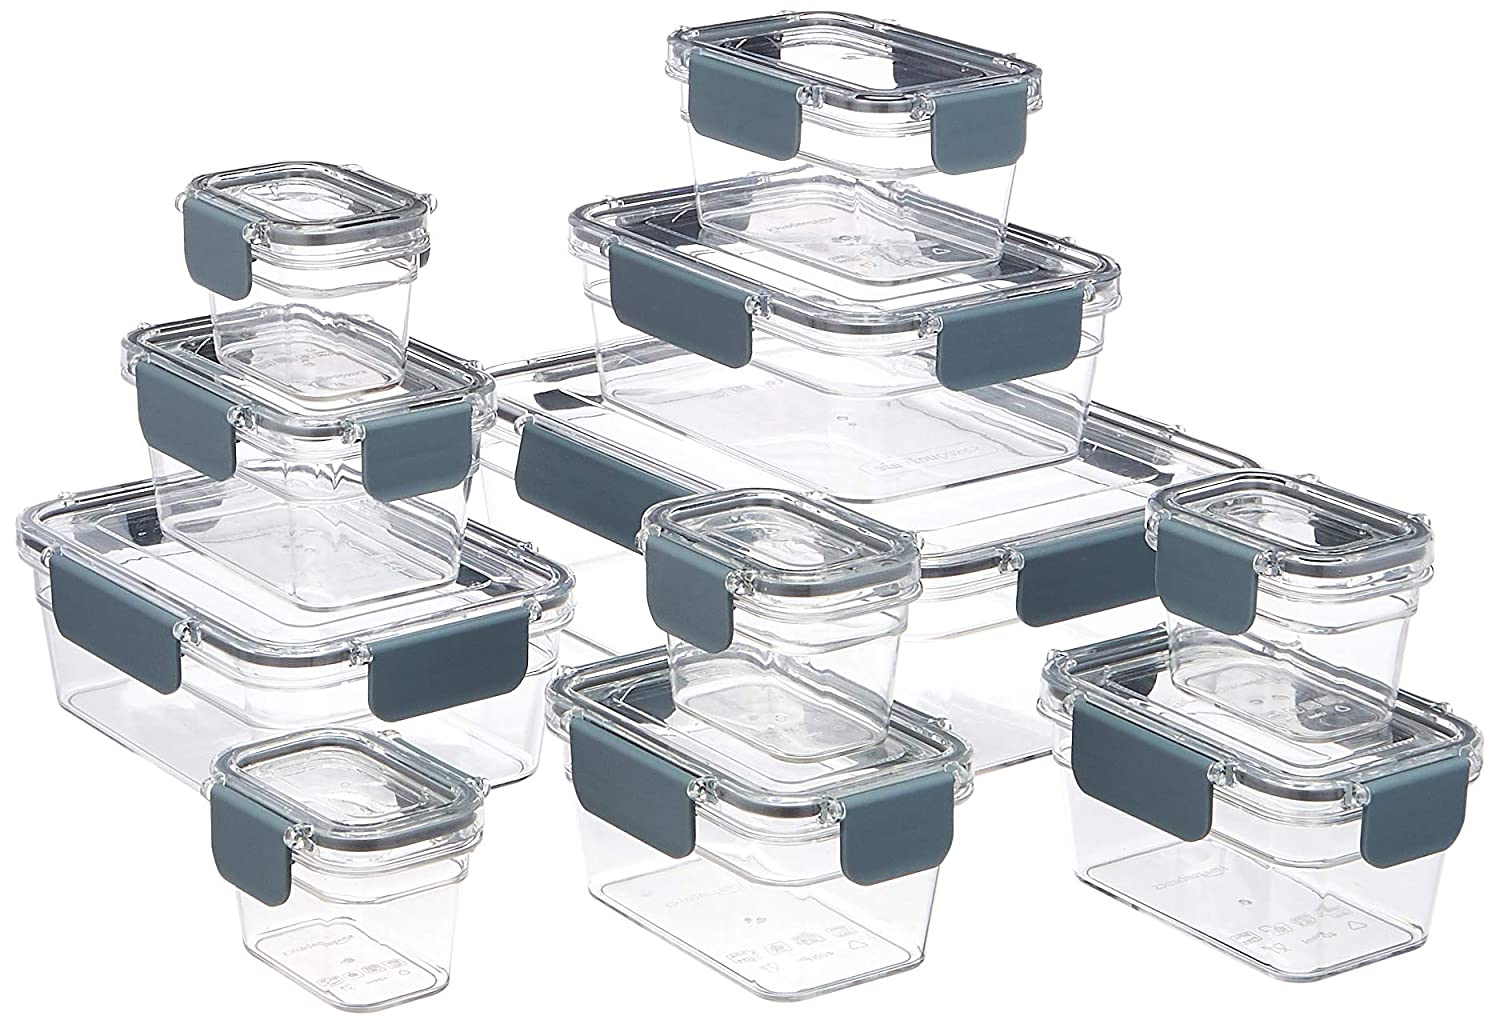 AmazonBasics Tritan 22 Piece Locking Food Storage Container - Clear